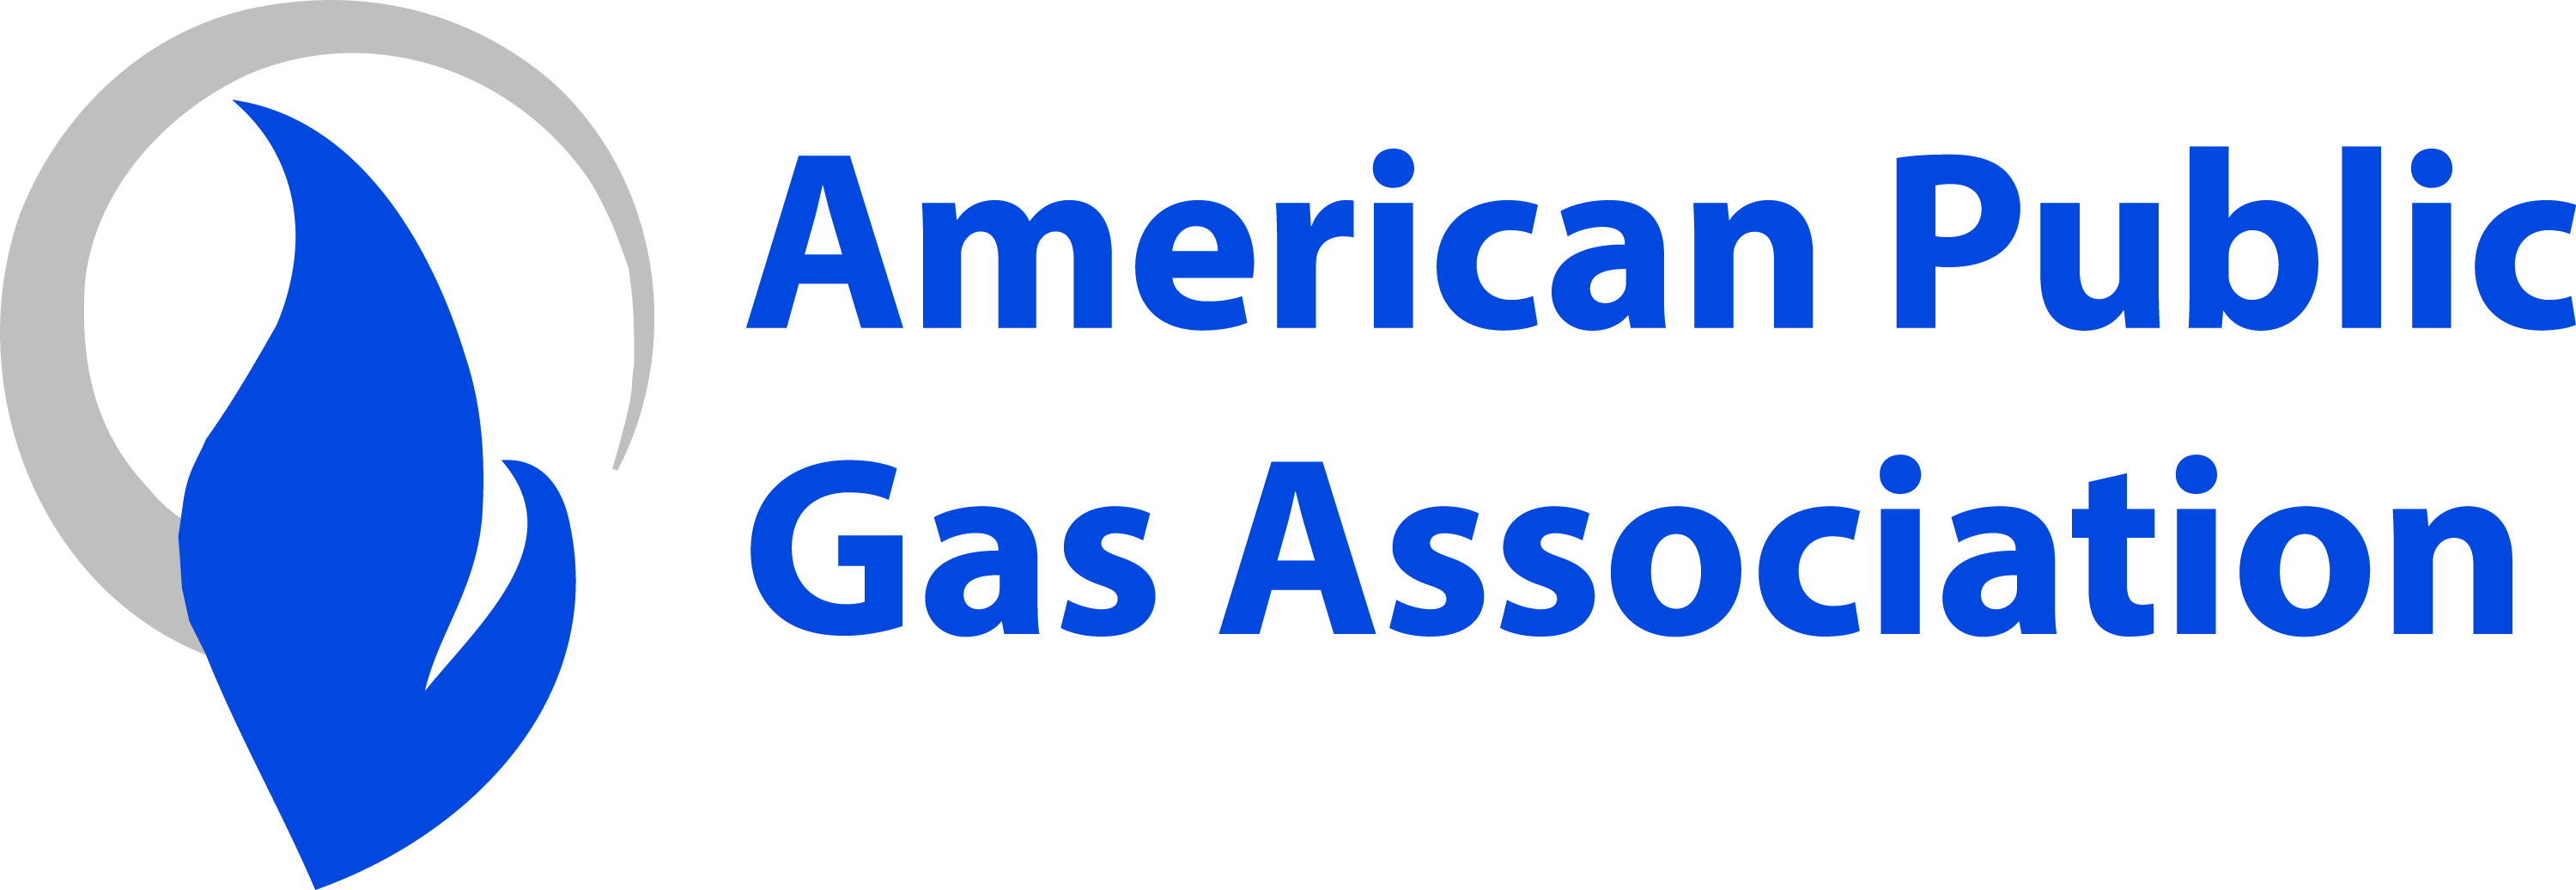 American Public Gas Association's logo